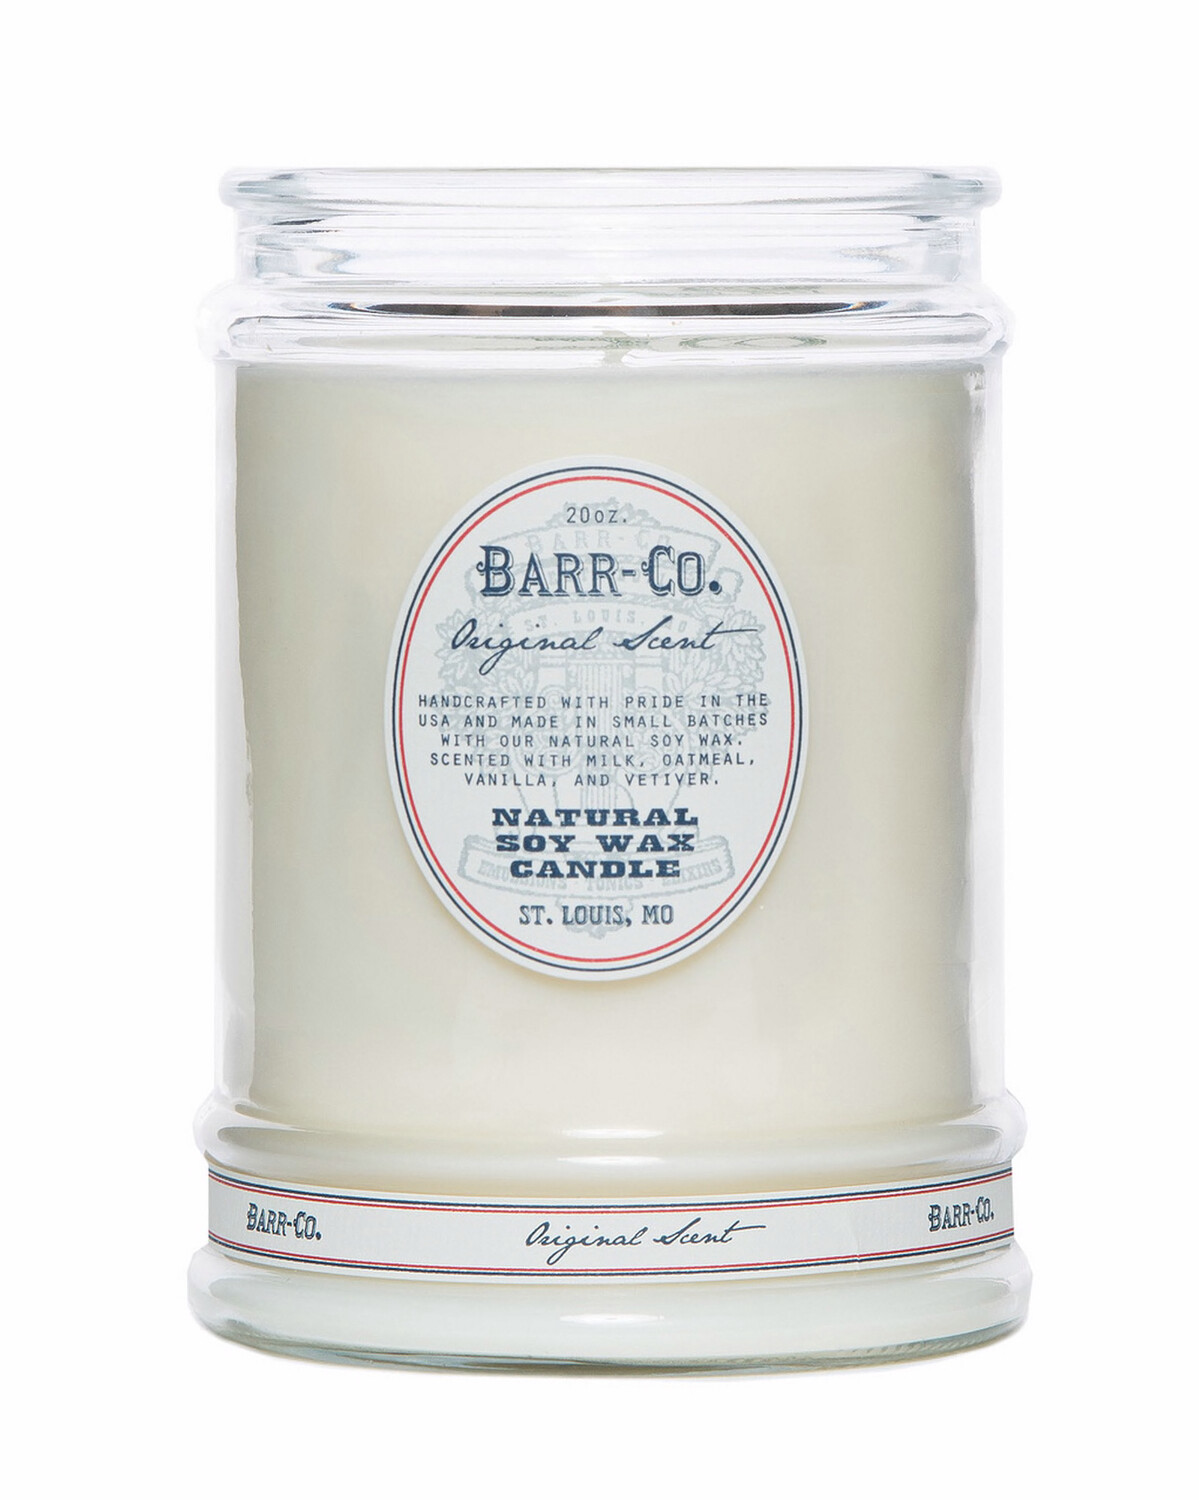 Barr-Co. Original Scent Tumbler Candle